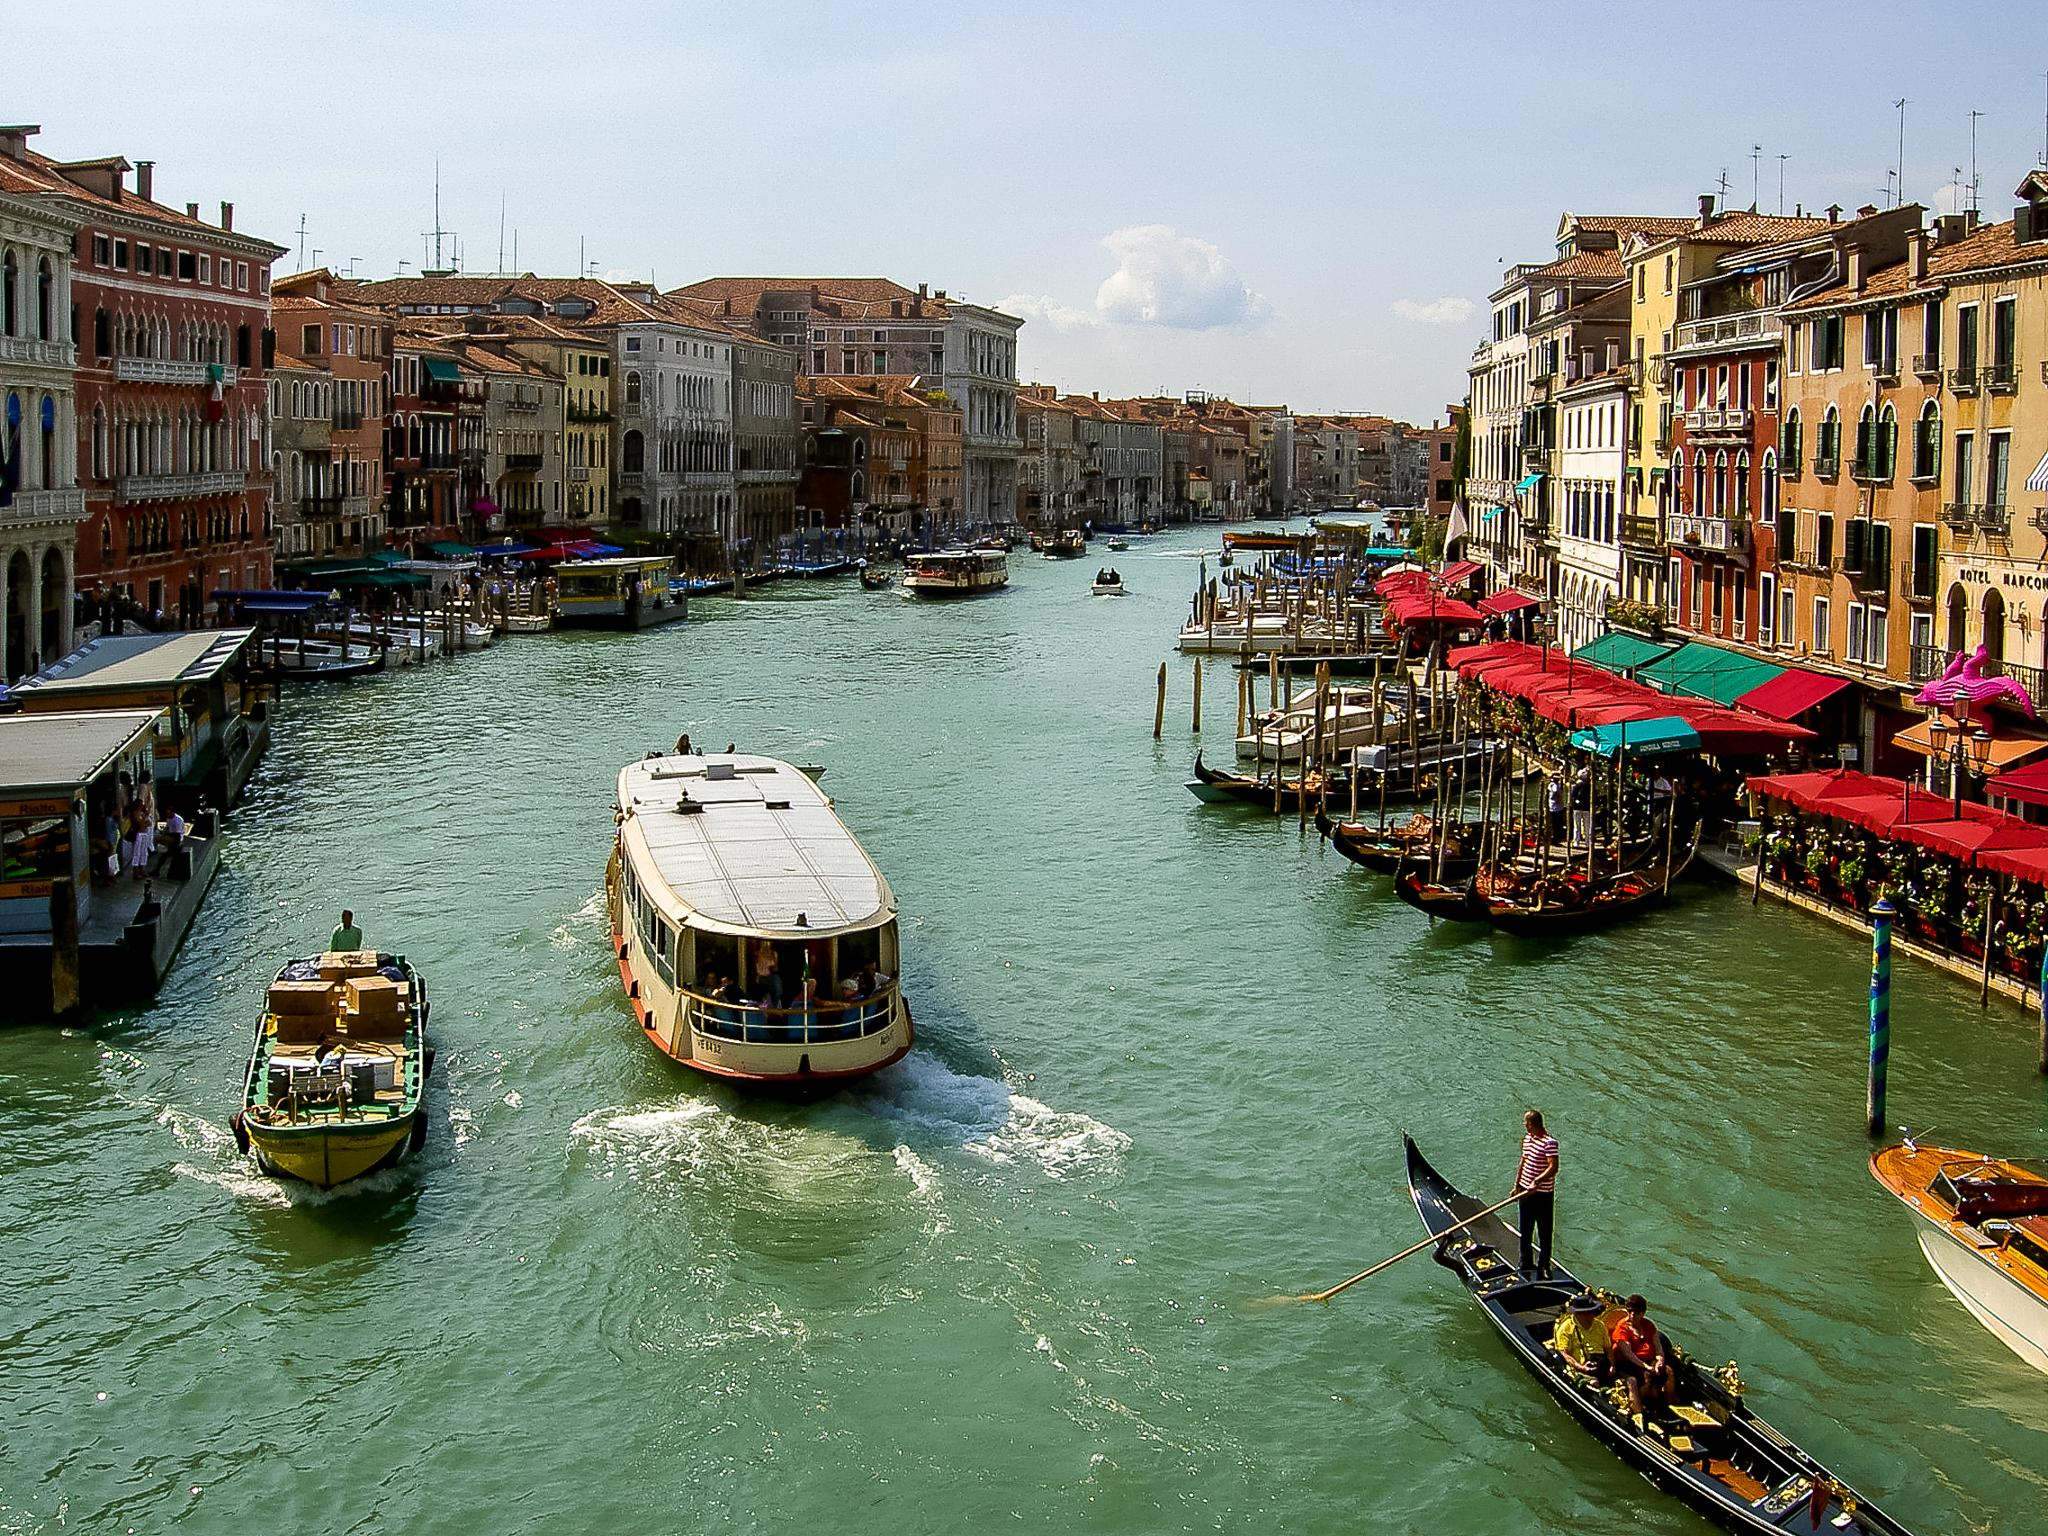 The Grand Canal by stephenhops